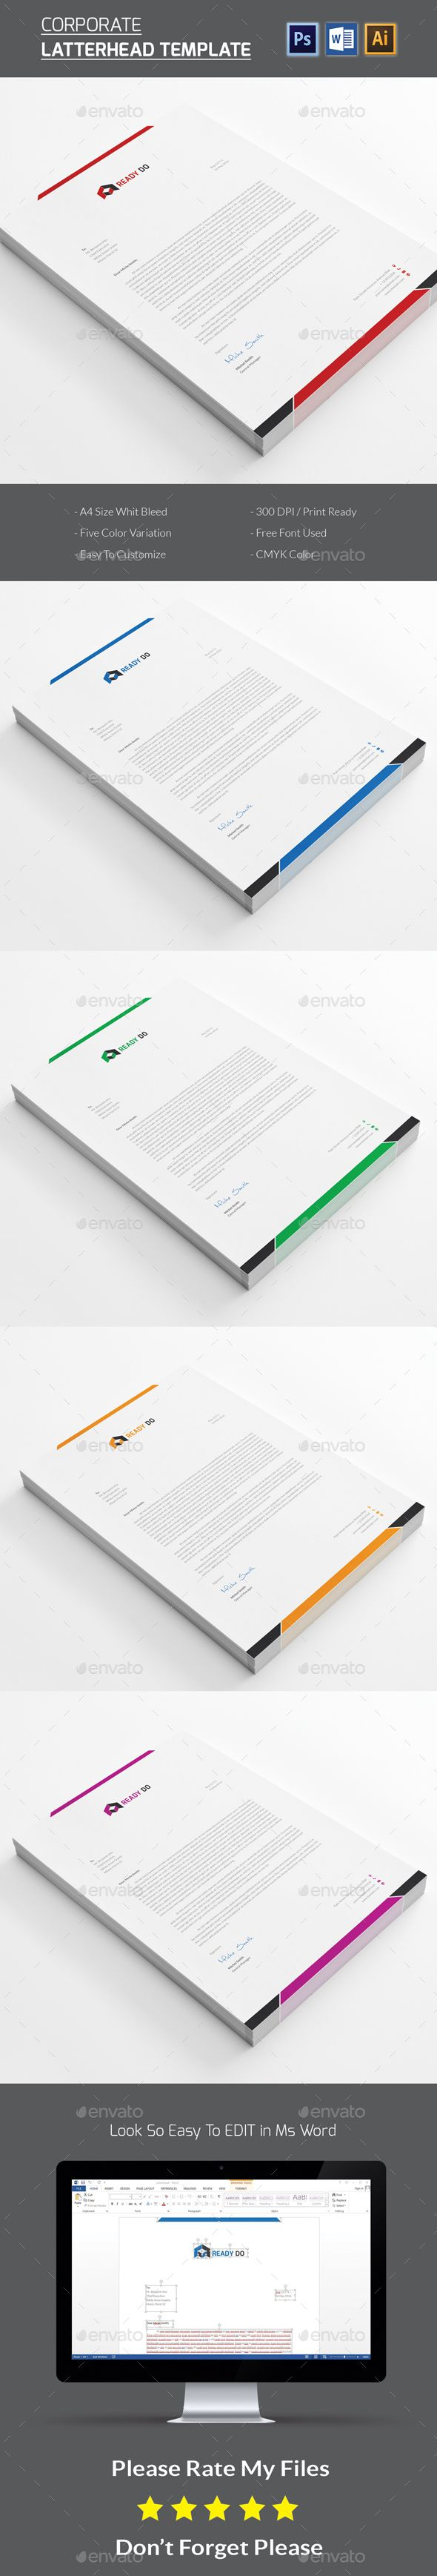 80 best letterhead design templates images on pinterest contact letterhead spiritdancerdesigns Gallery